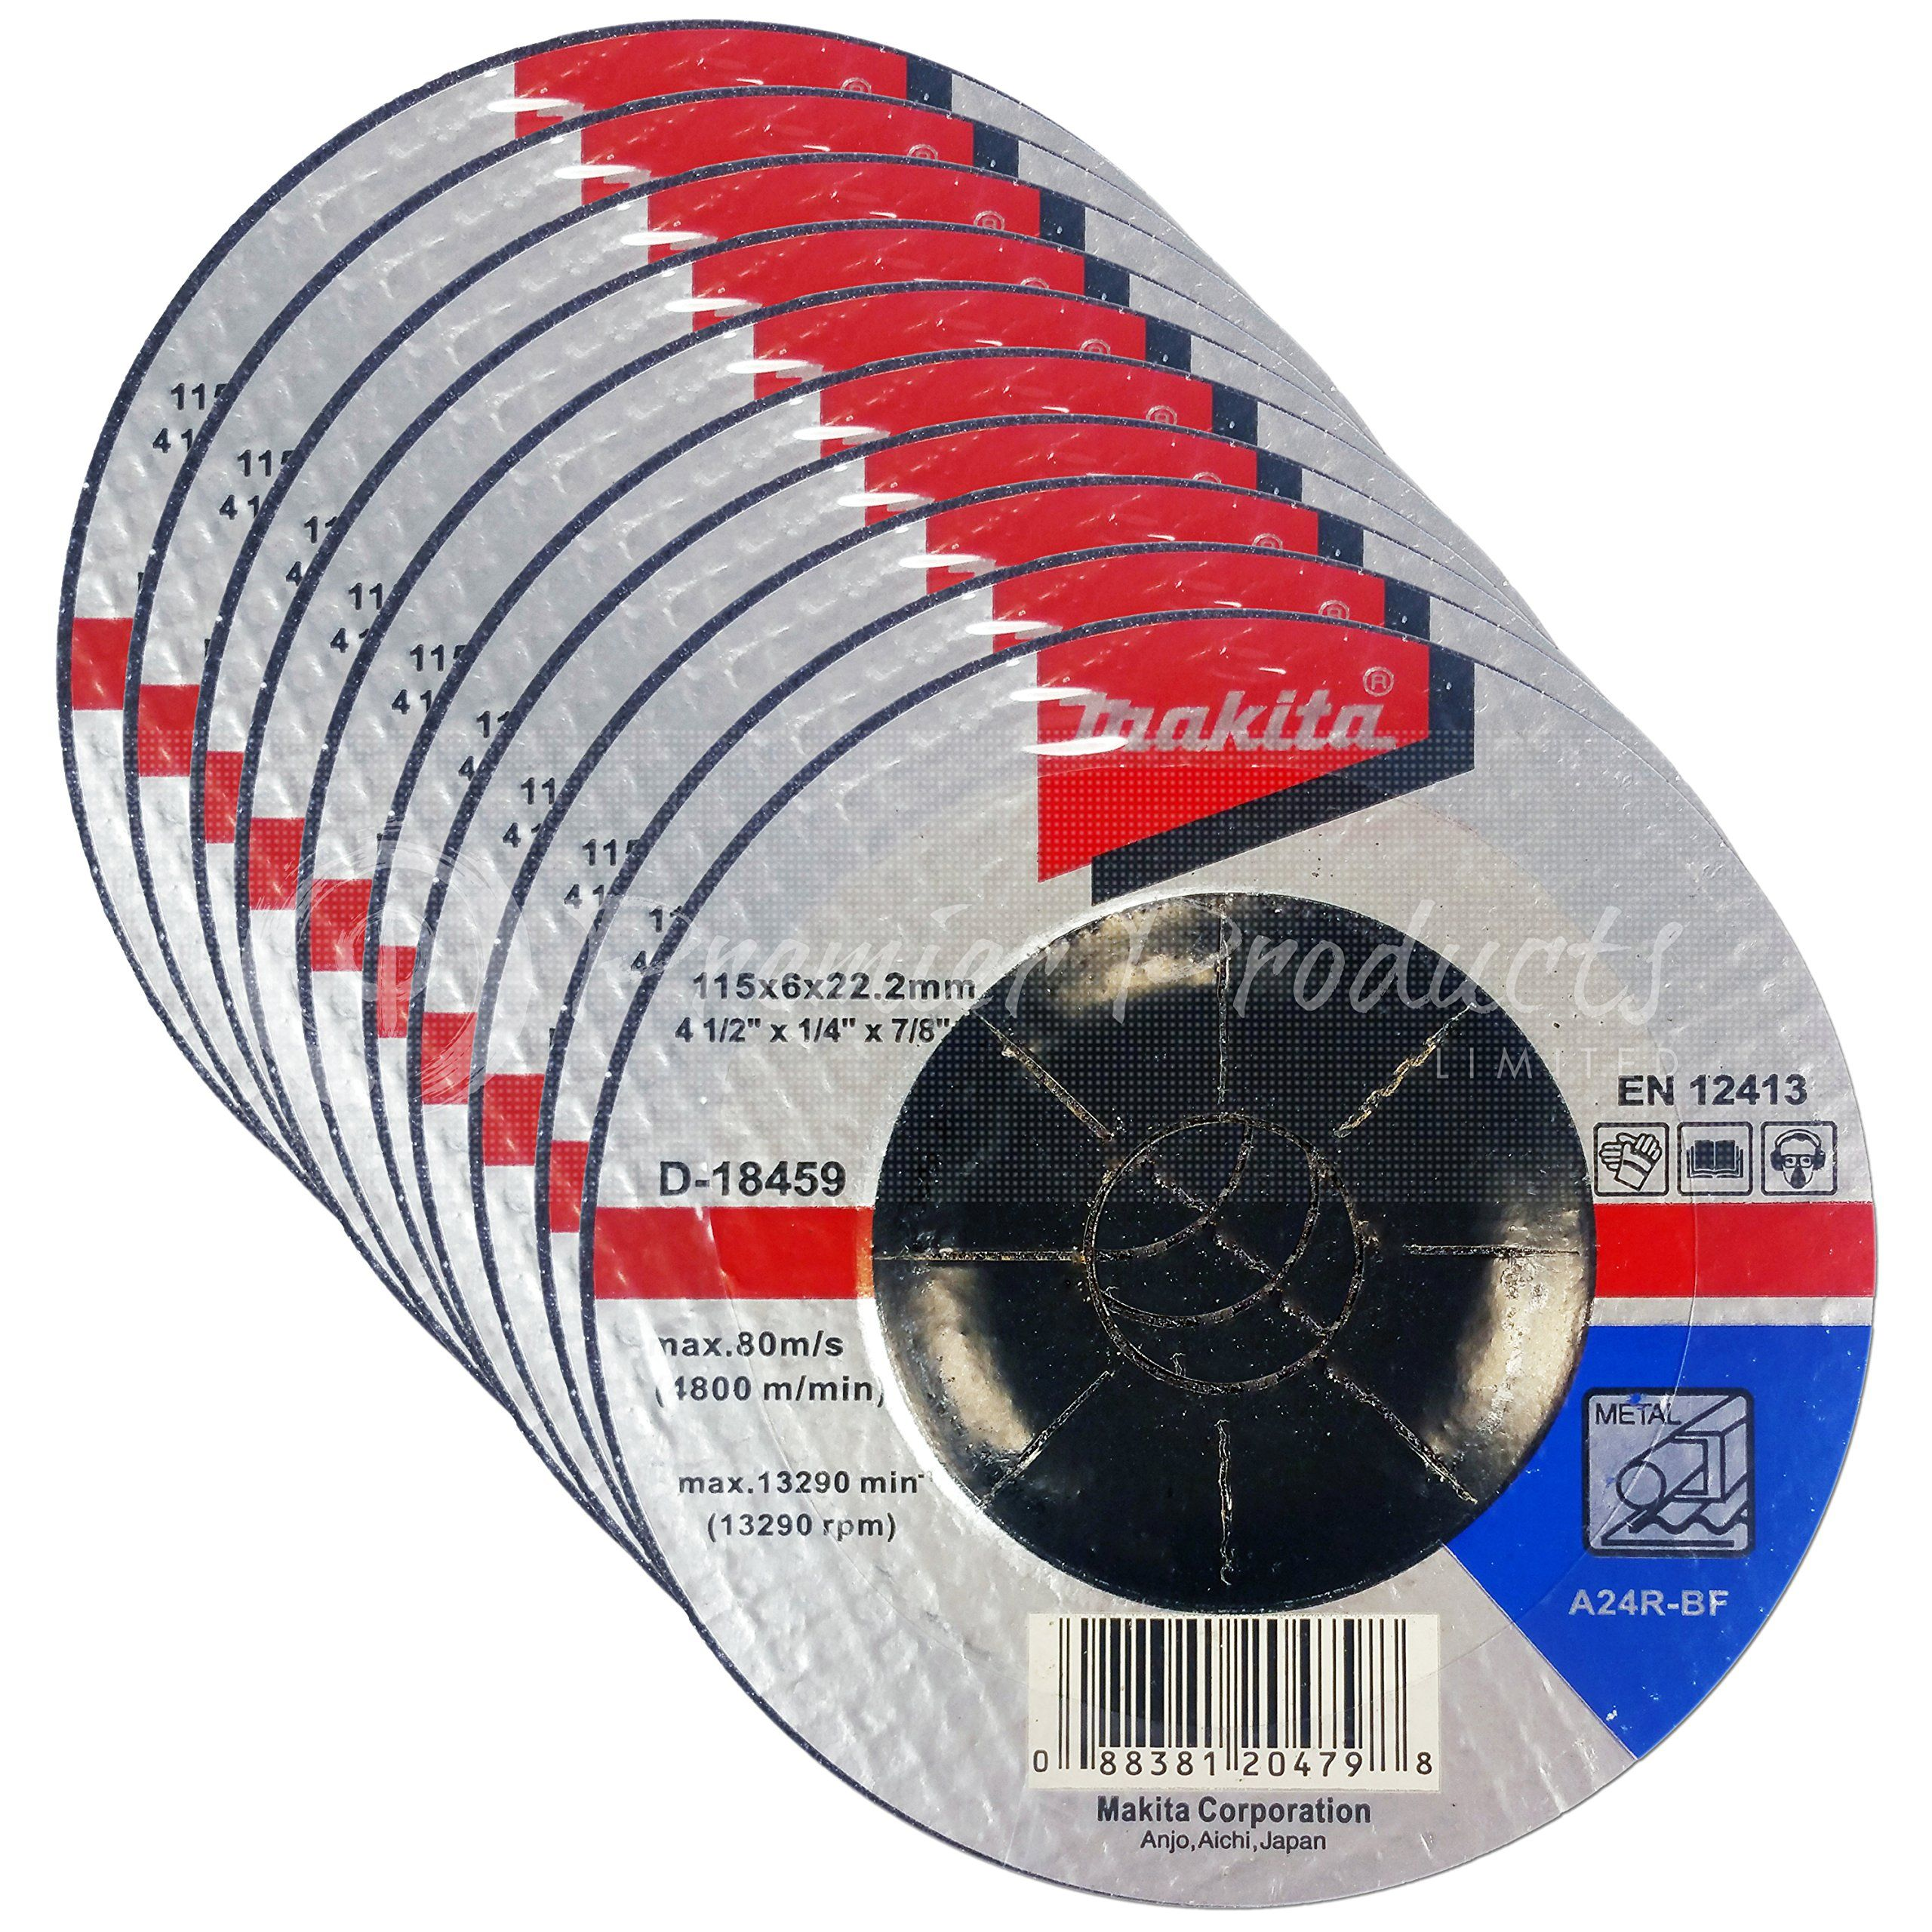 Makita 10 Pack 4 5 Grinding Wheel For Grinders Aggressive Grinding For Metal 4 1 2 X 1 4 X 7 8 Inch Grinding Pack Makita Makita Metal Aggressive